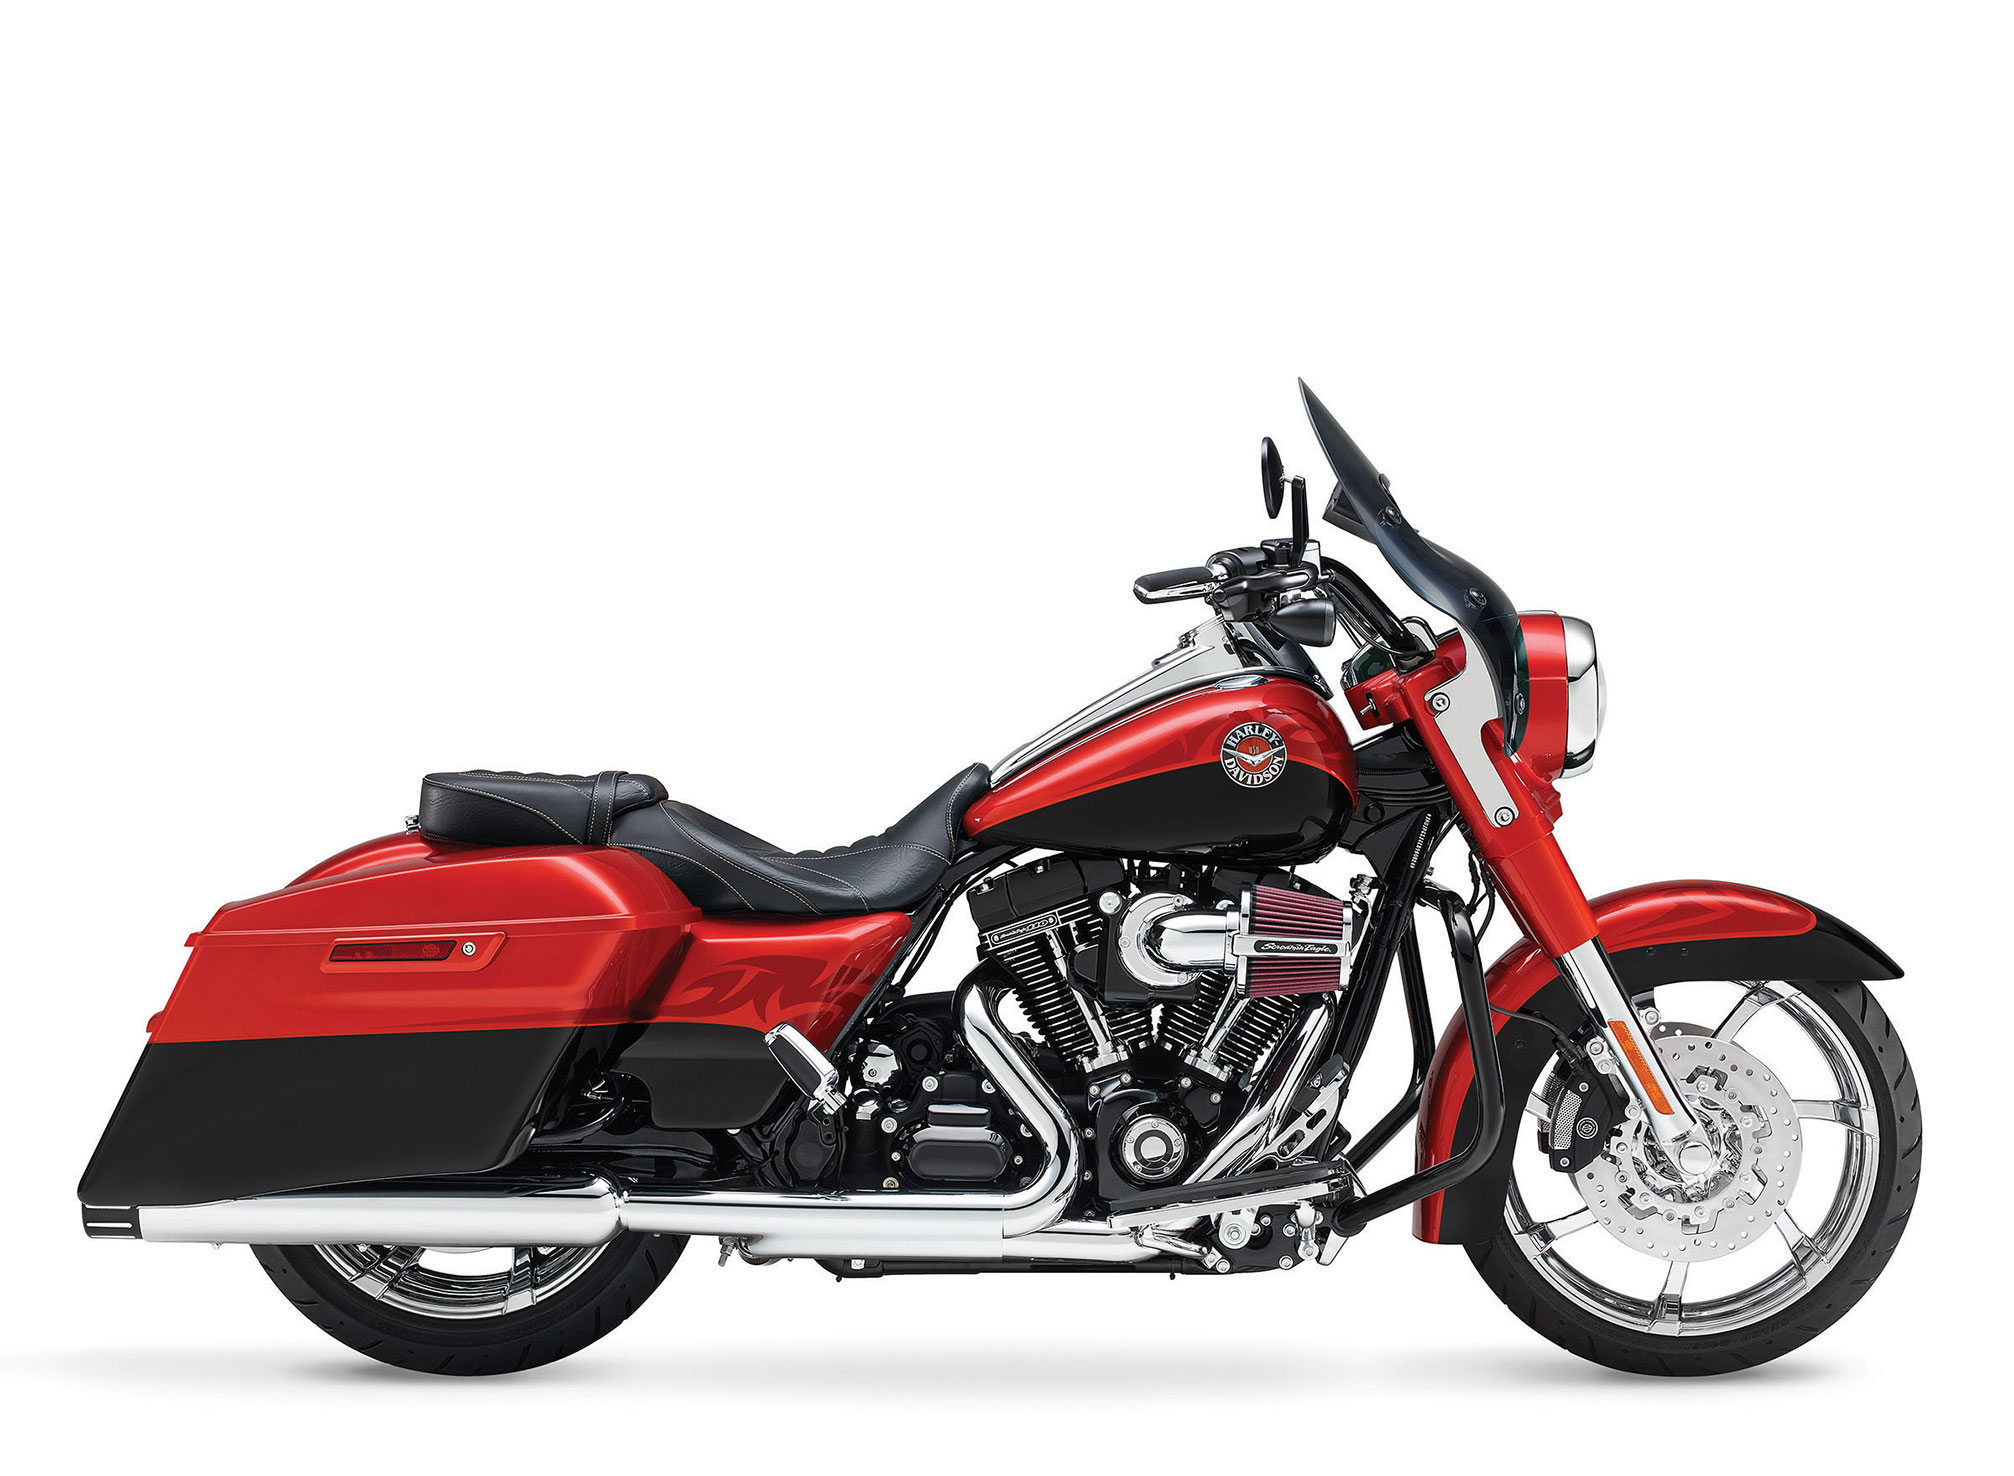 Harley Davidson Cvo Road King Cvo Road King 1